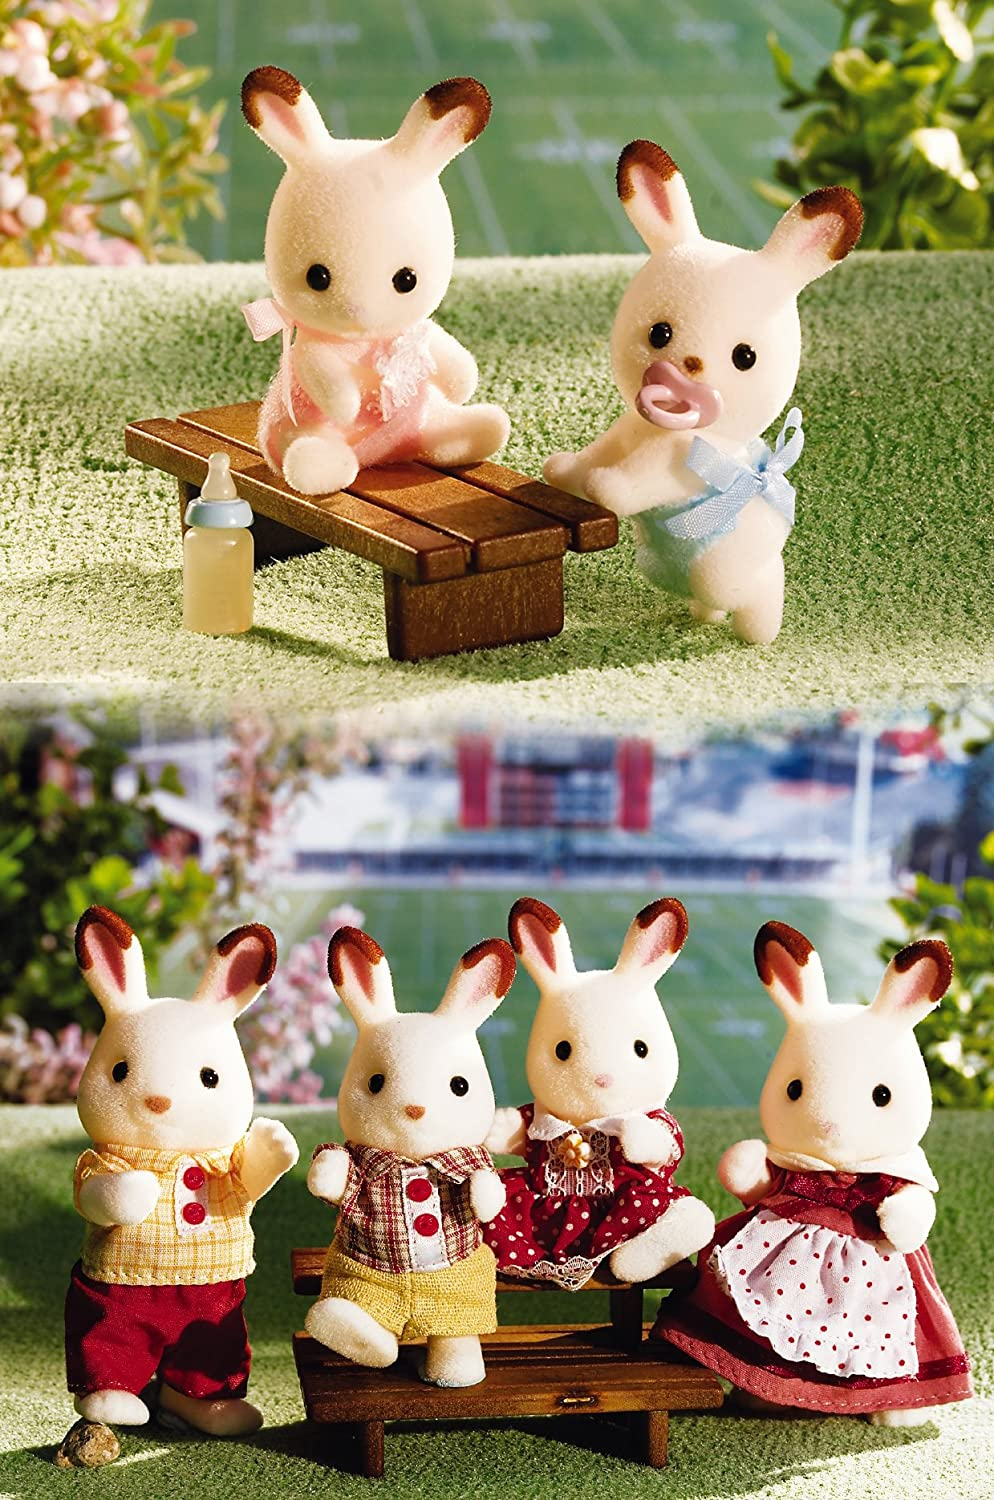 Calico Critters Hopscotch Rabbit Family and Baby Twins 6 Figures